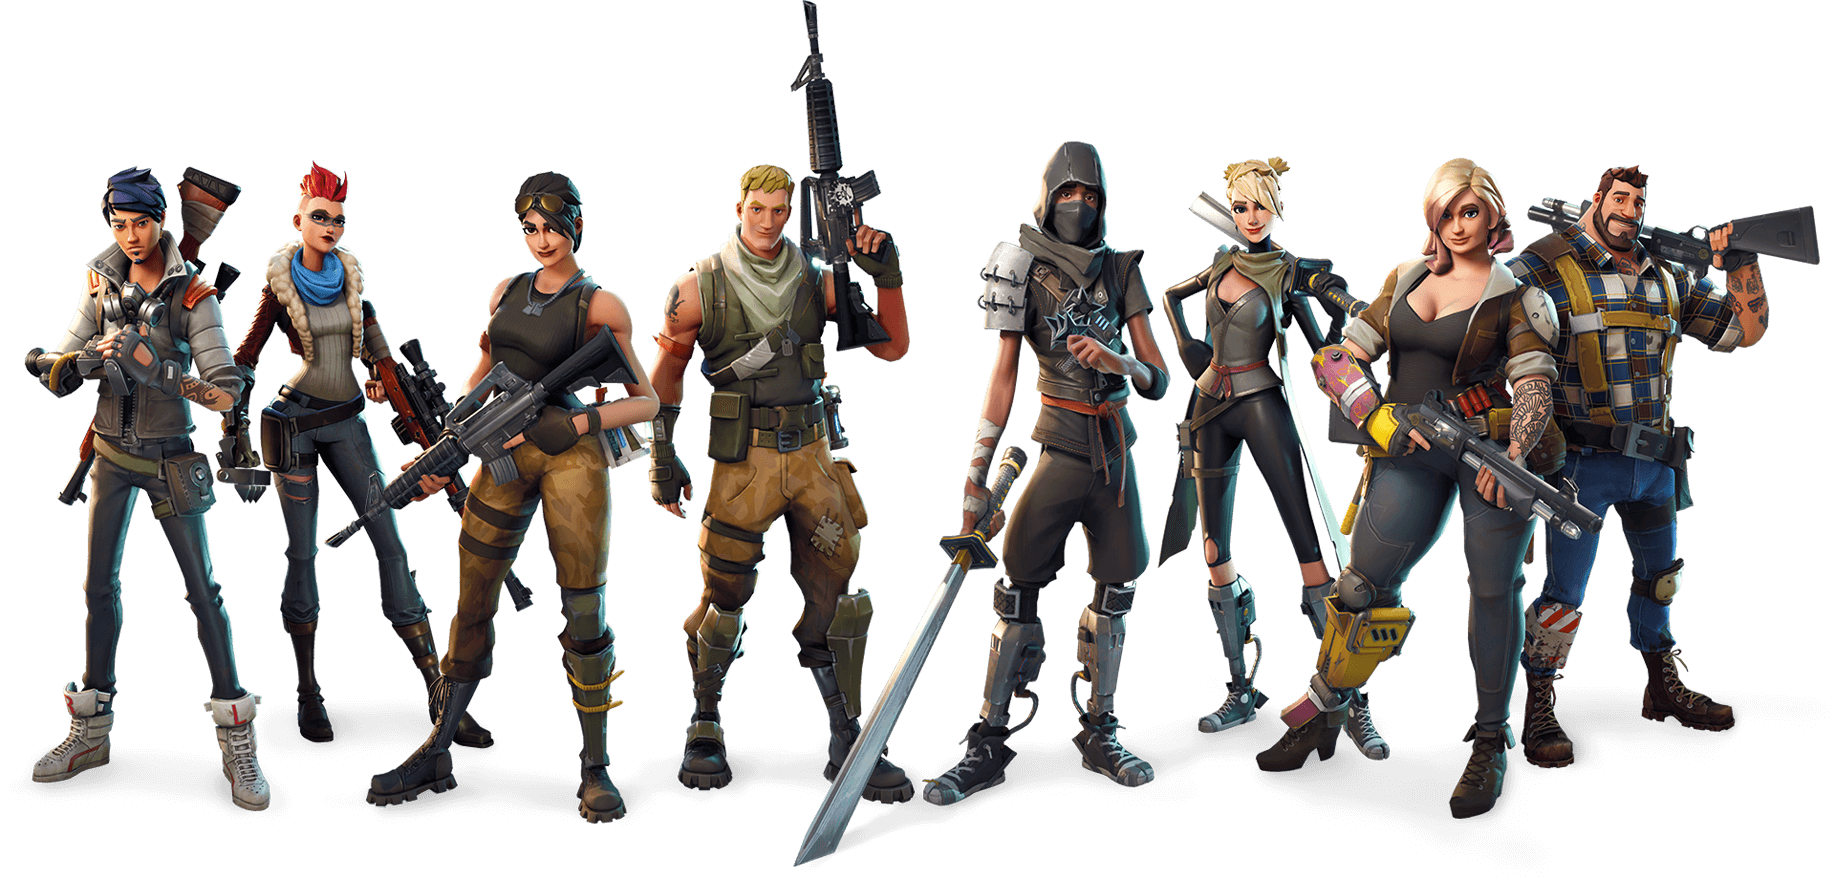 Fortnite all classes Group picture